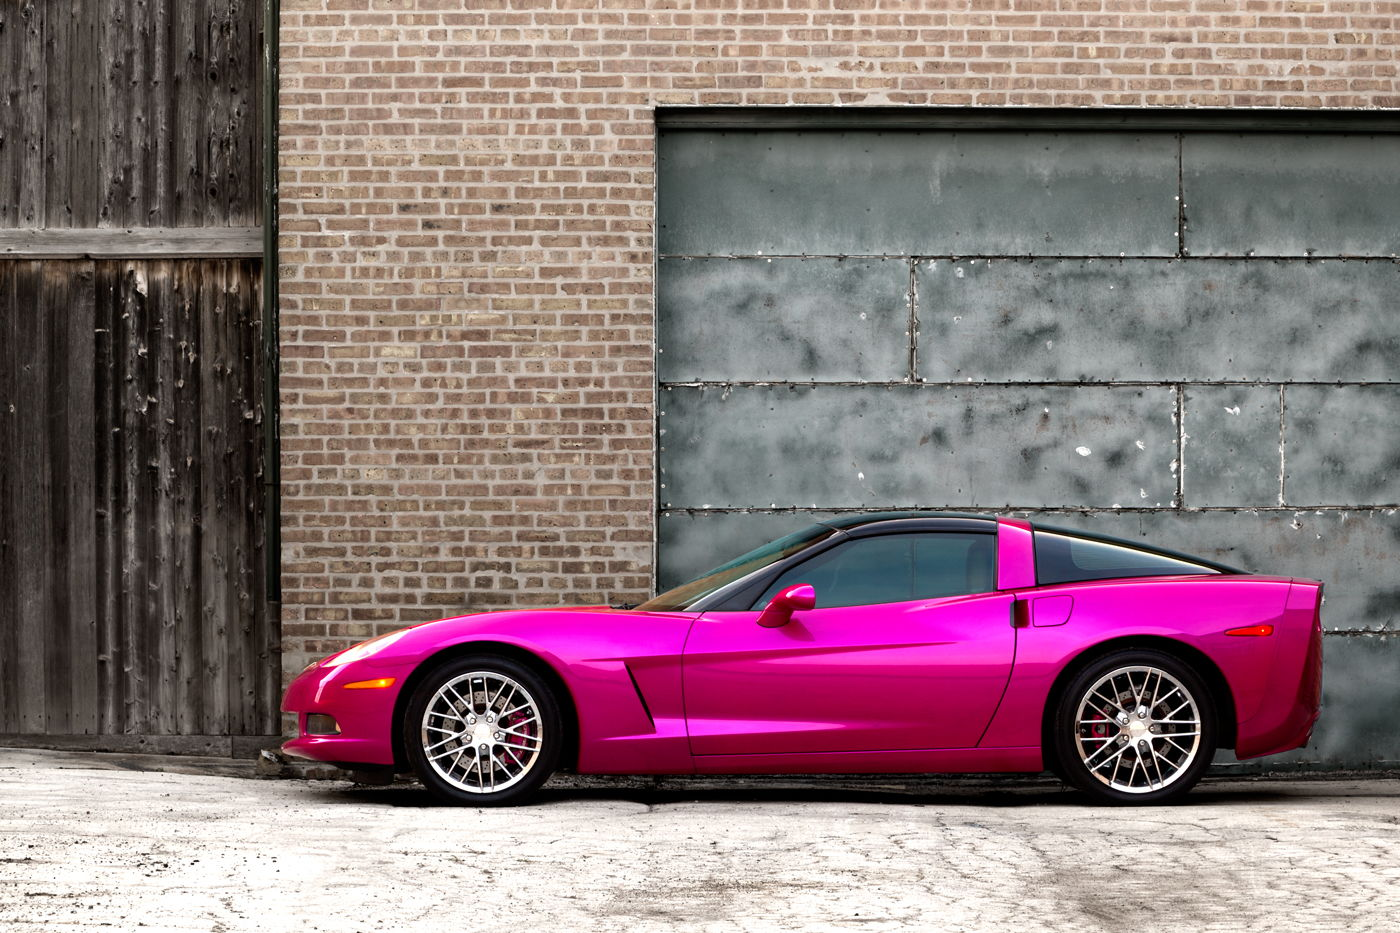 Fs 2006 chevrolet corvette c6 hot pink chicago 6speedonline the car is located in chicago il for anyone interested in a showing for any questions ppi carfax or additional contact info please send an e mail sciox Images